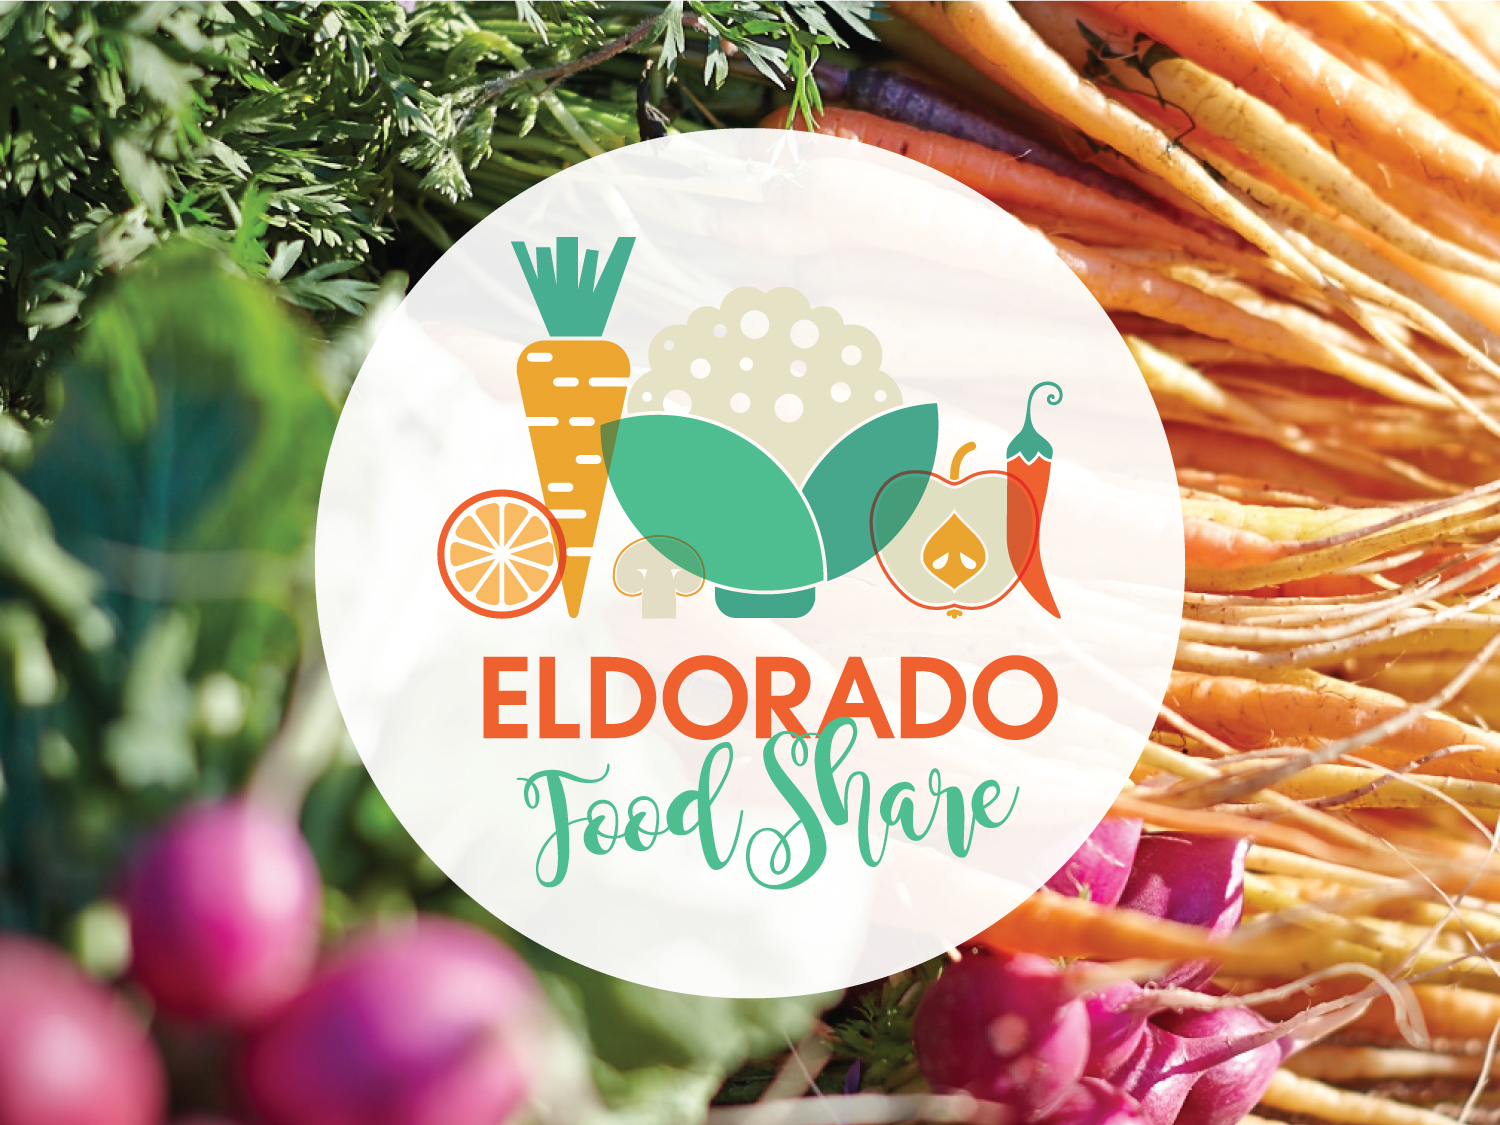 Eldorado Food Share – Purple Possum Design – Graphic Design Wangaratta